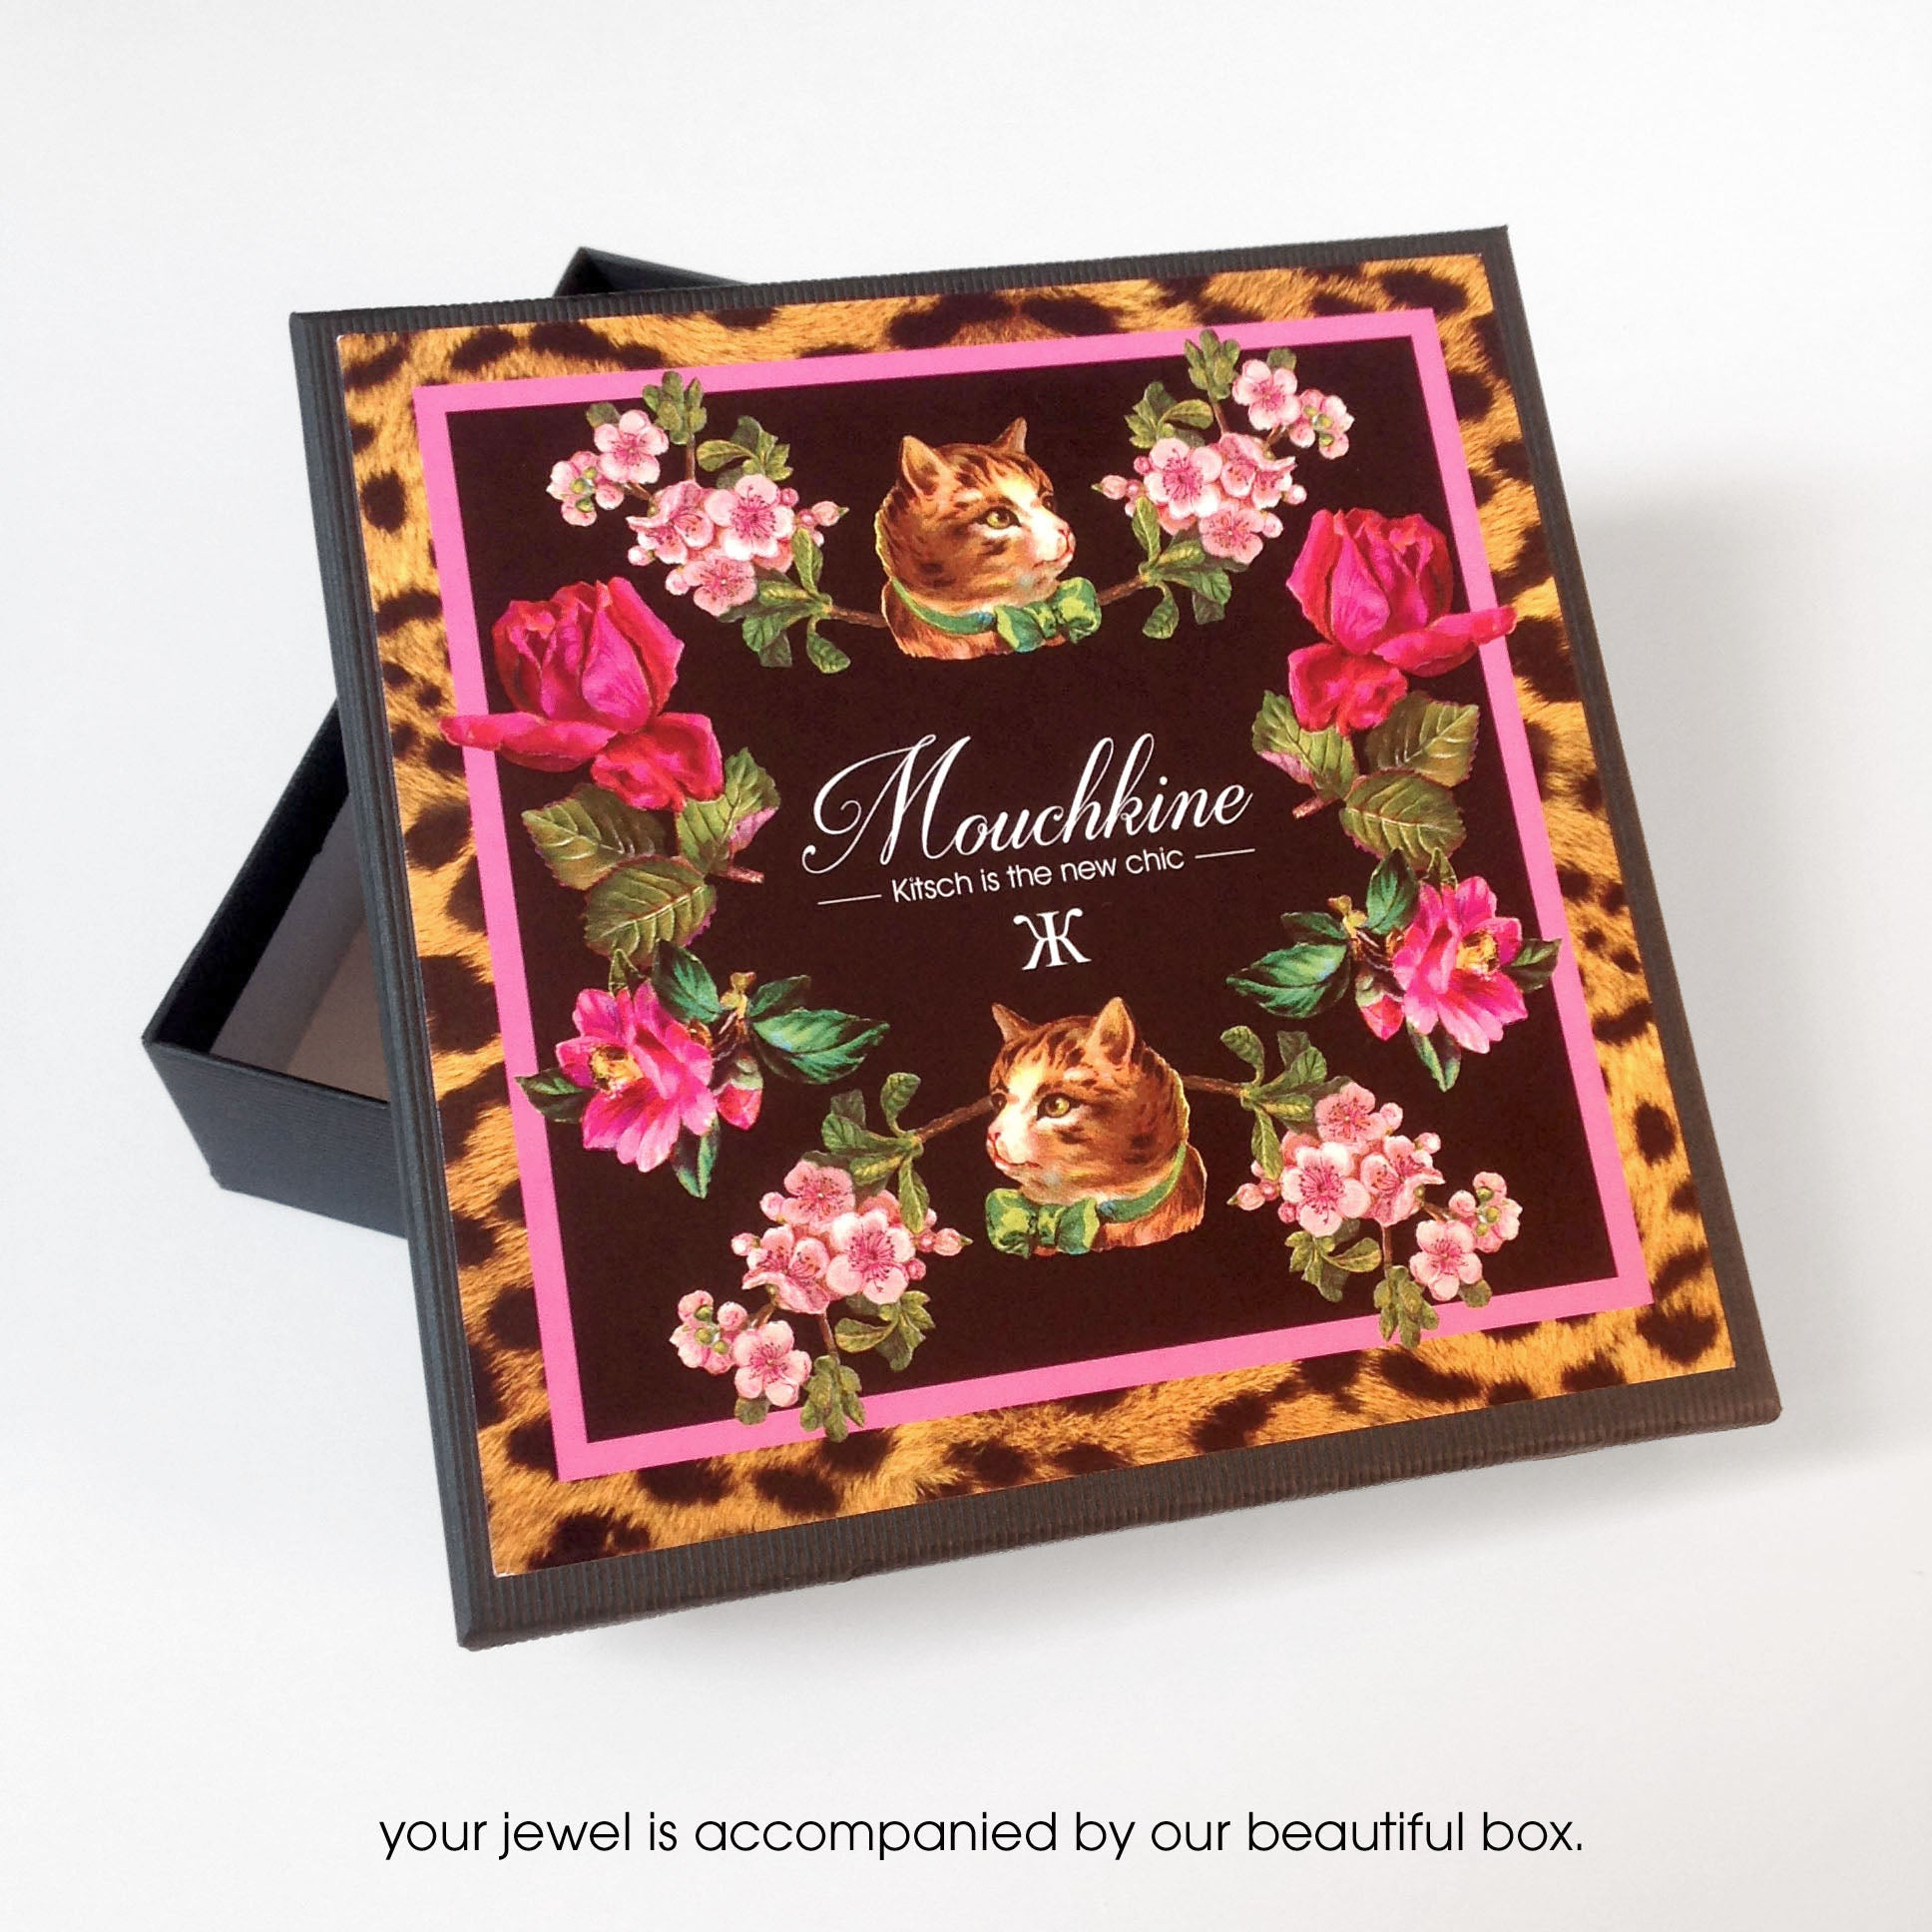 mouchkine jewelry luxury stylish packaging